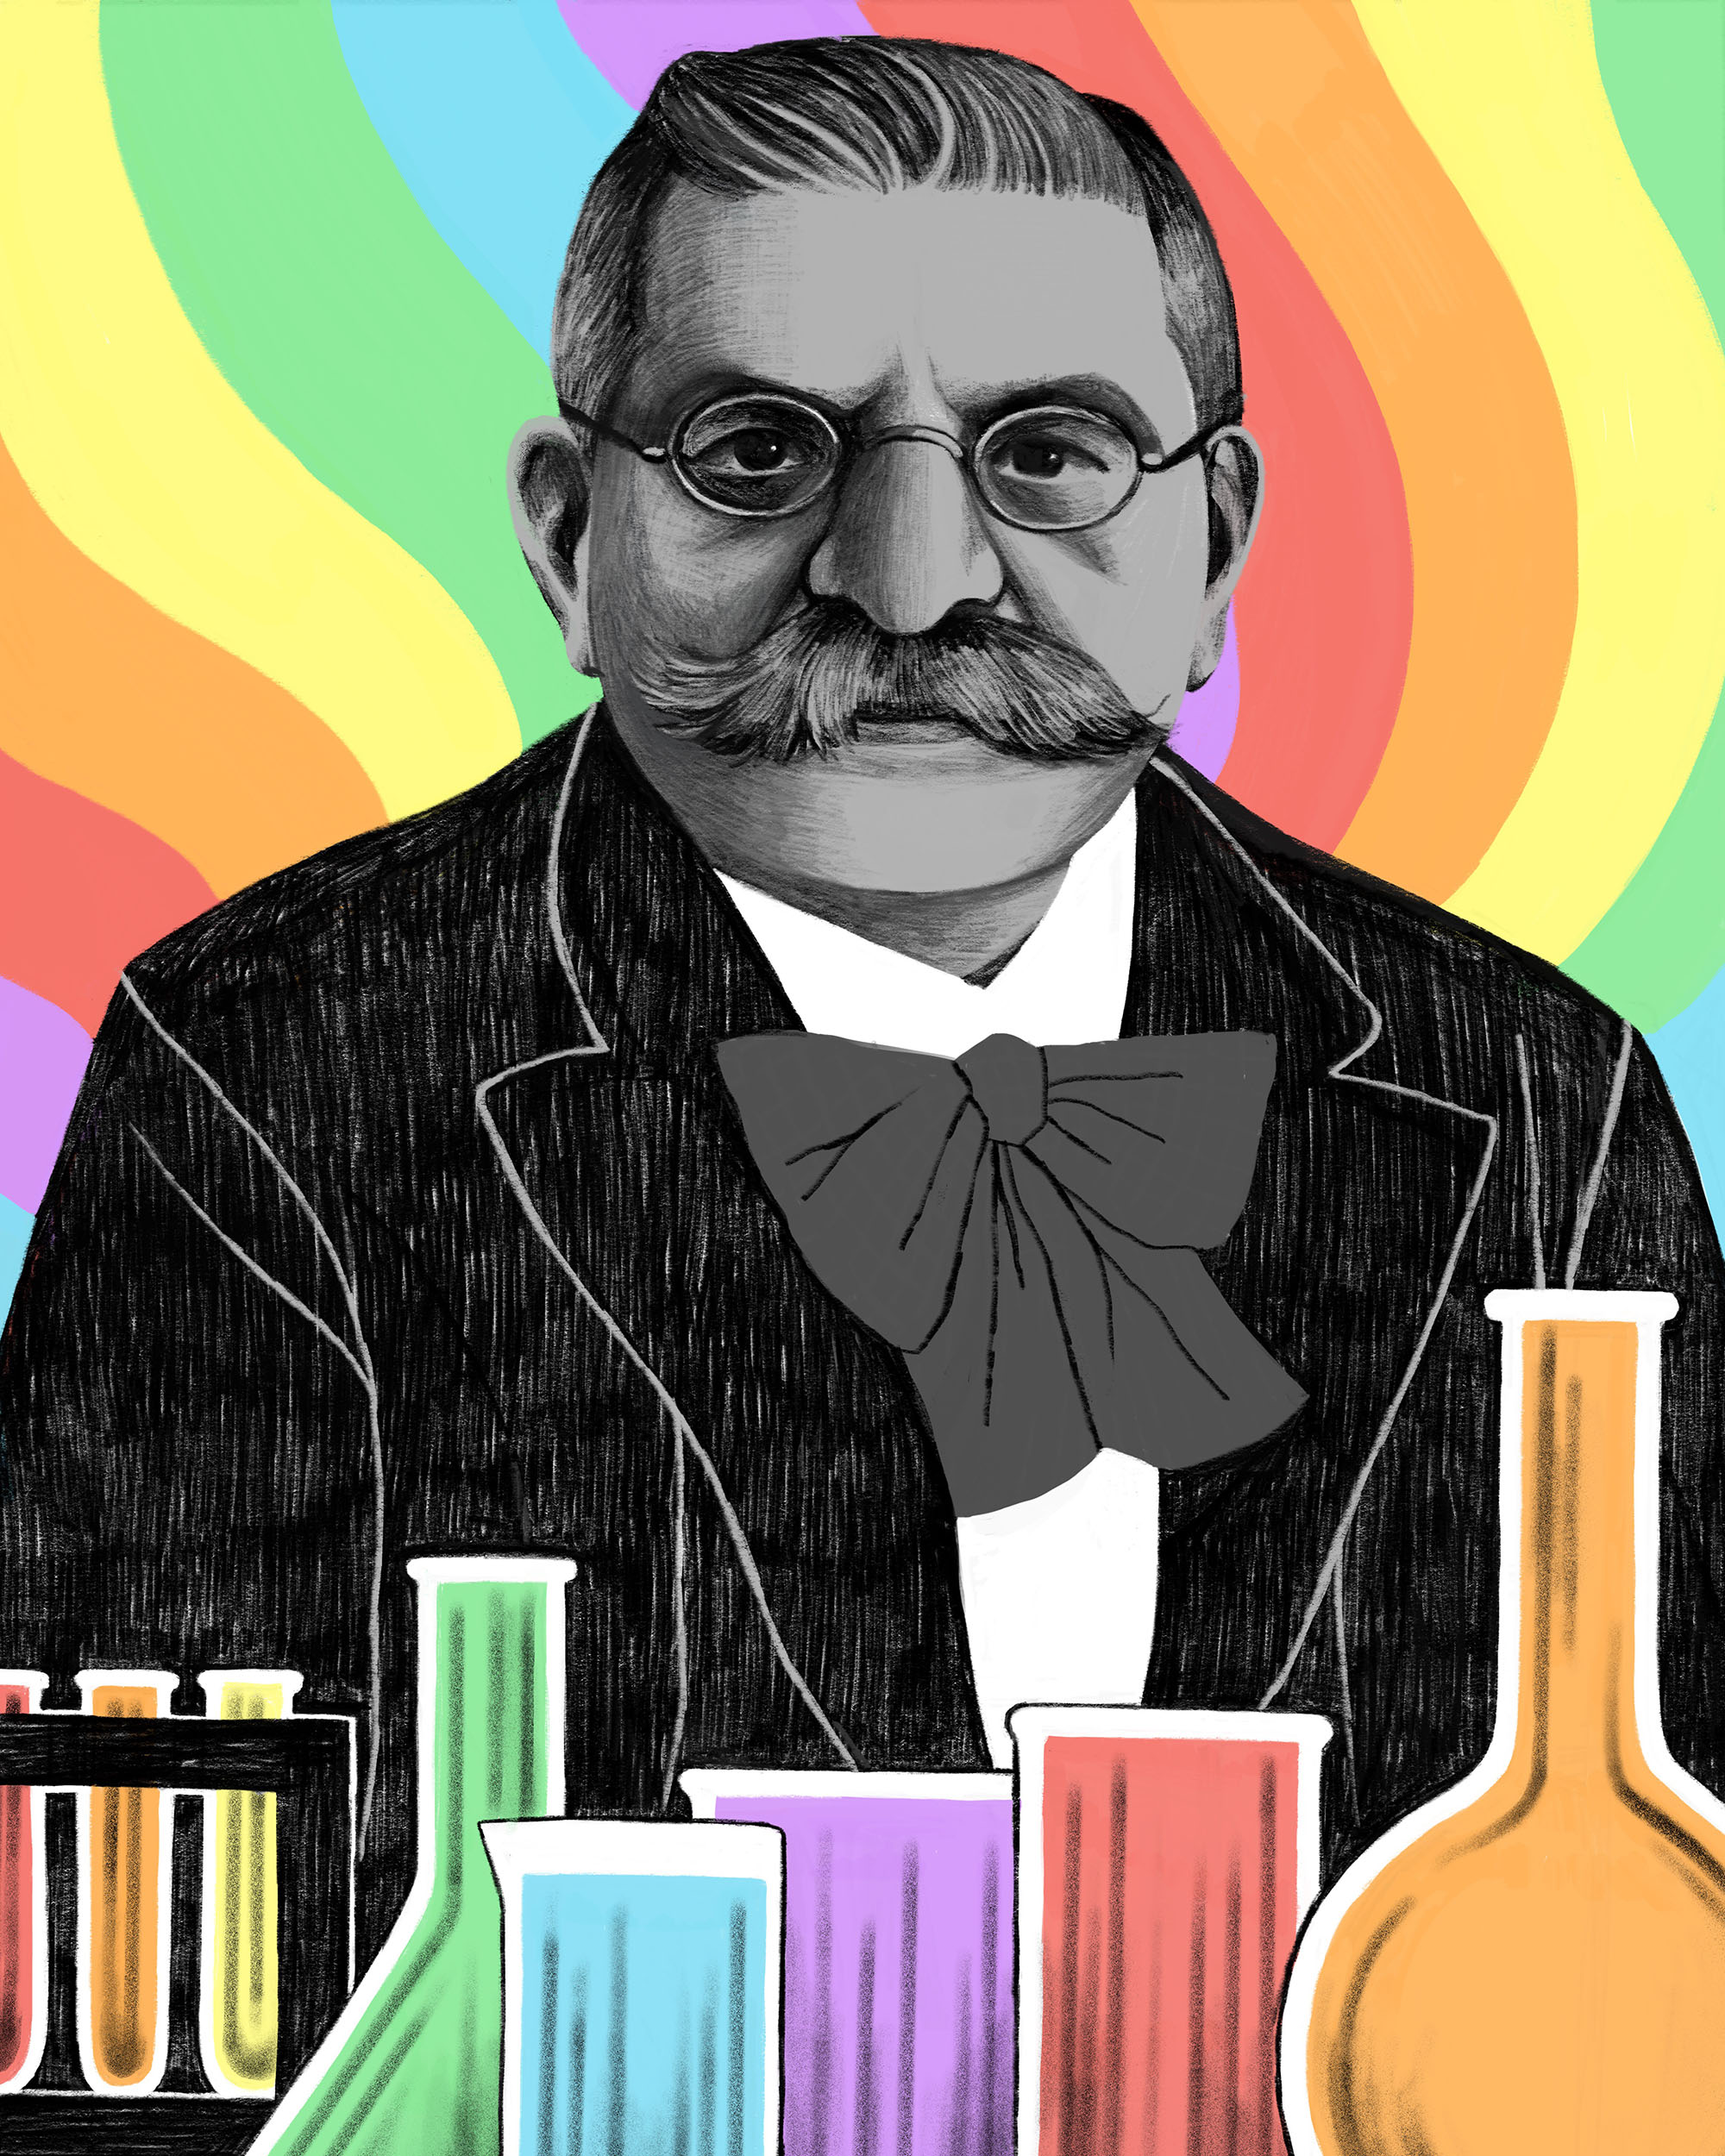 Illustration of a mustached Magnus Hirschfeld with colorful testubes against a wavy rainbow background.